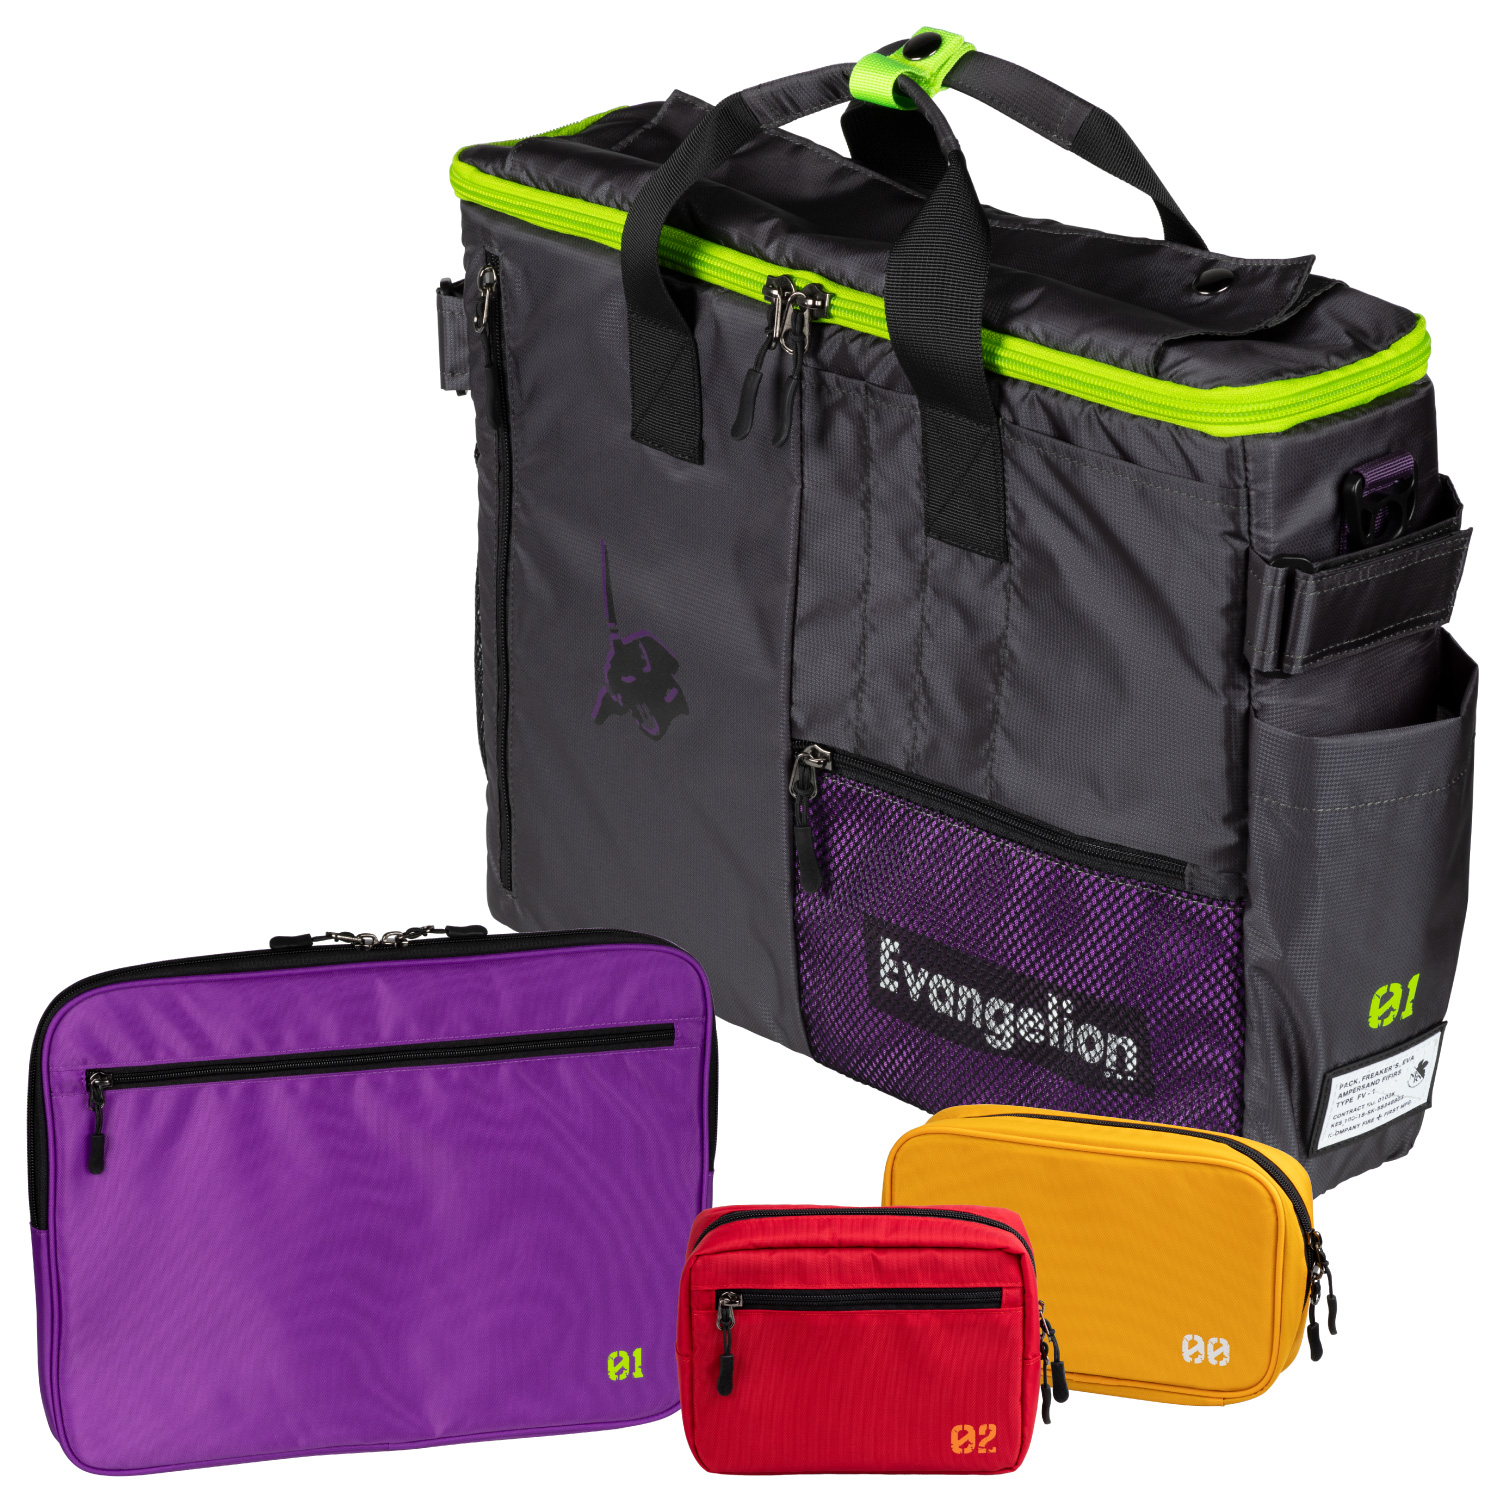 EVANGELION CORE 3WAY BAG in GADGET CASE by FIRE FIRST (EVA-01 MODEL)